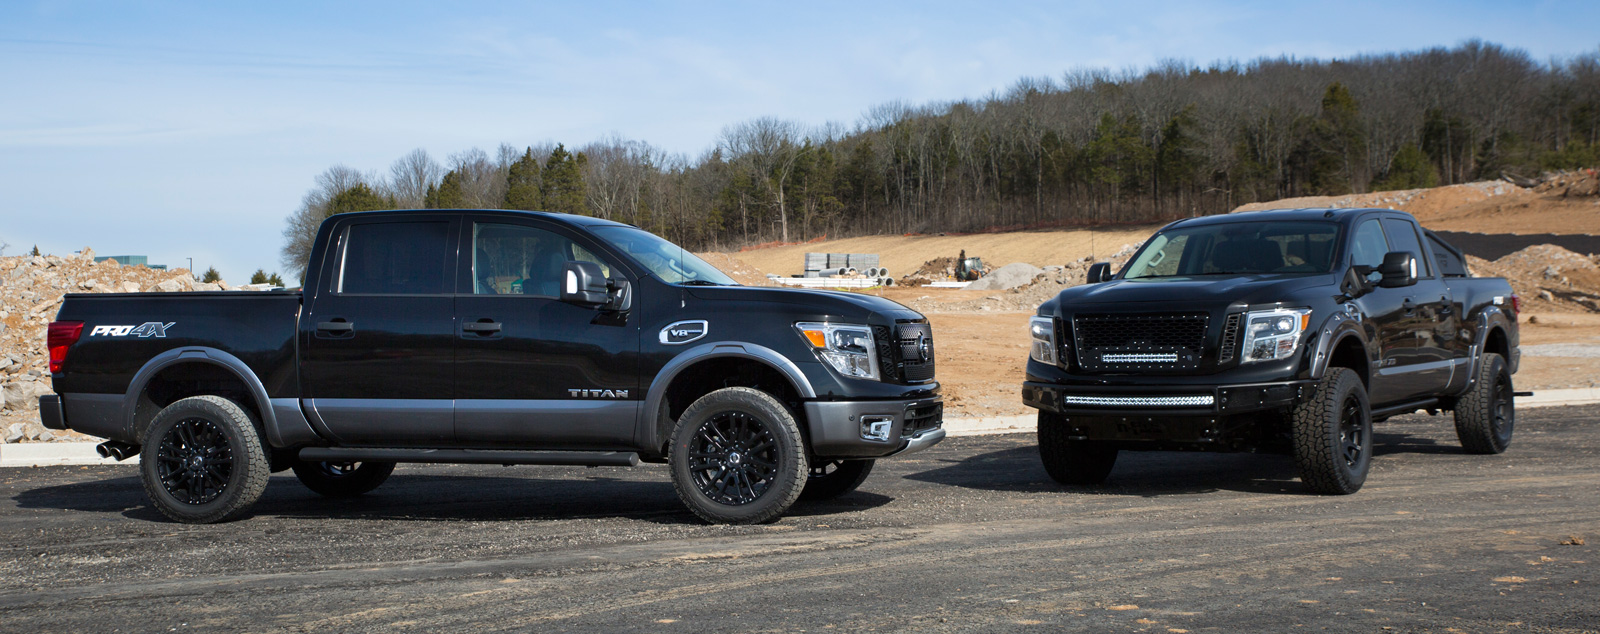 2017 Nissan Titan XD Gets Ready for Off-Road Fun ...